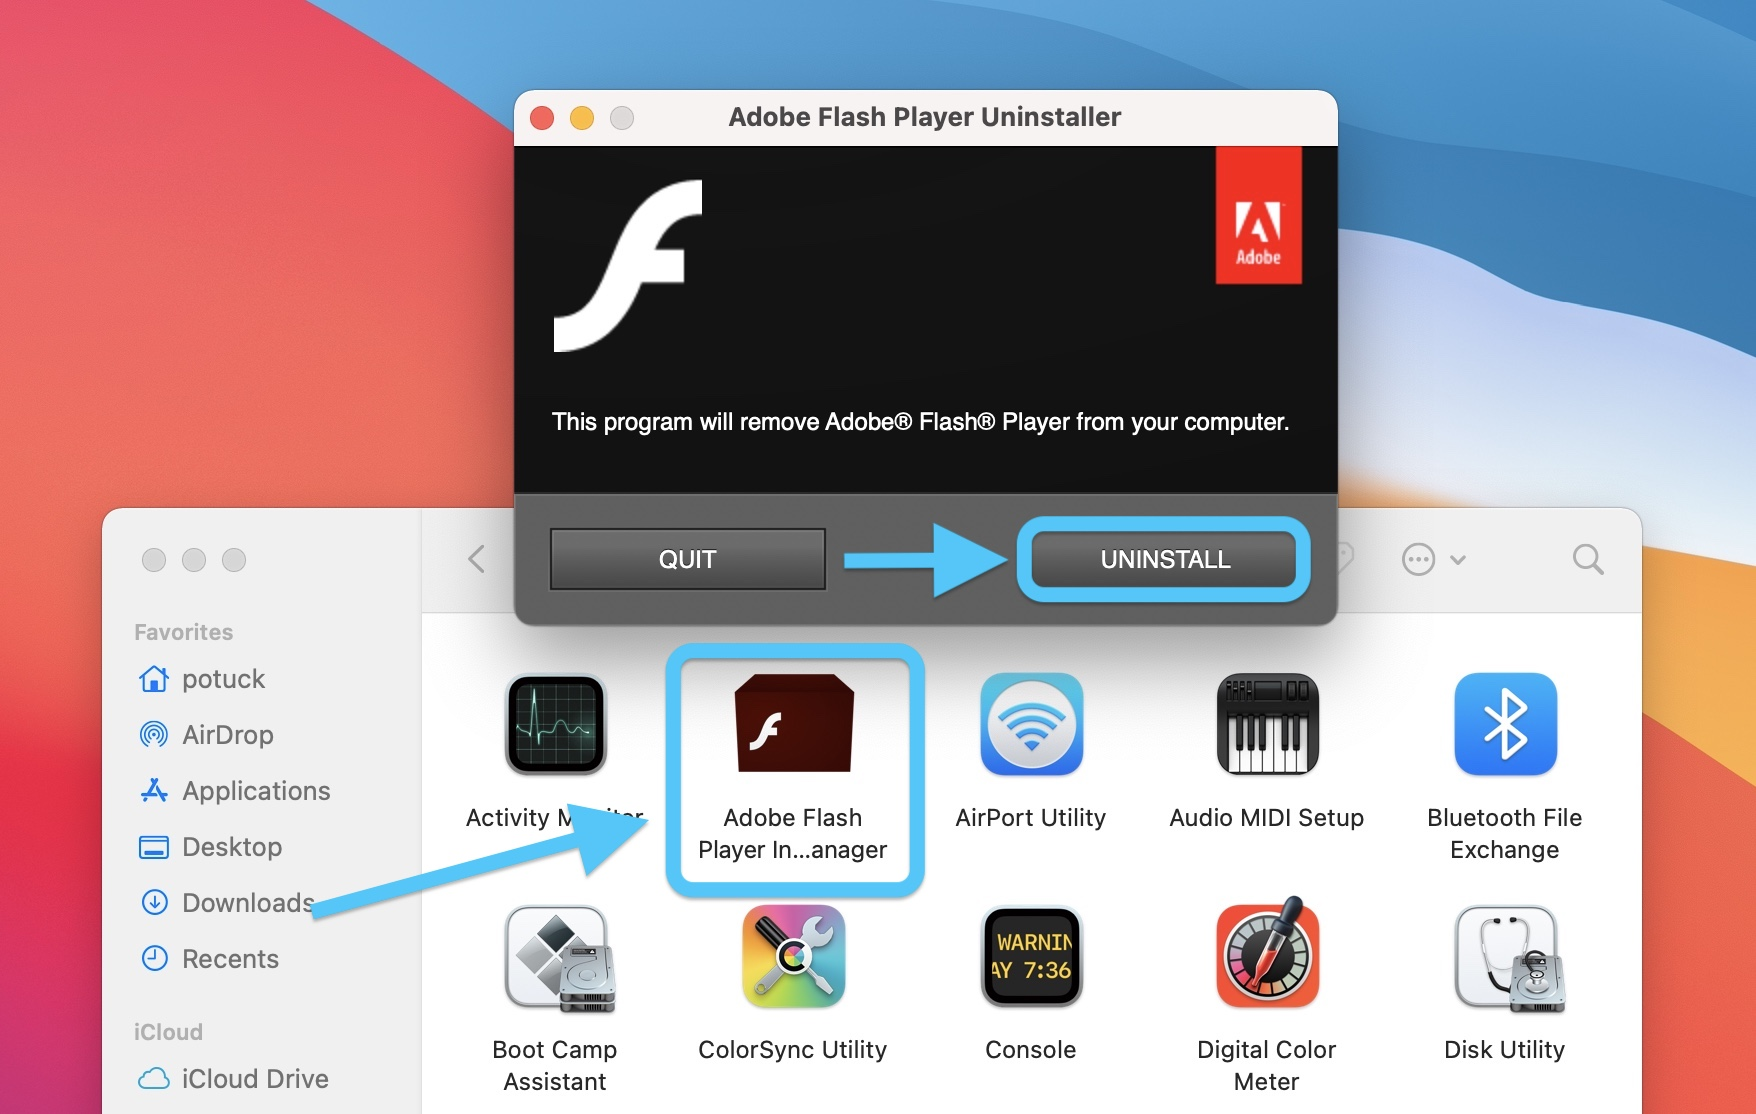 How to uninstall Adobe Flash Player on Mac (2021)